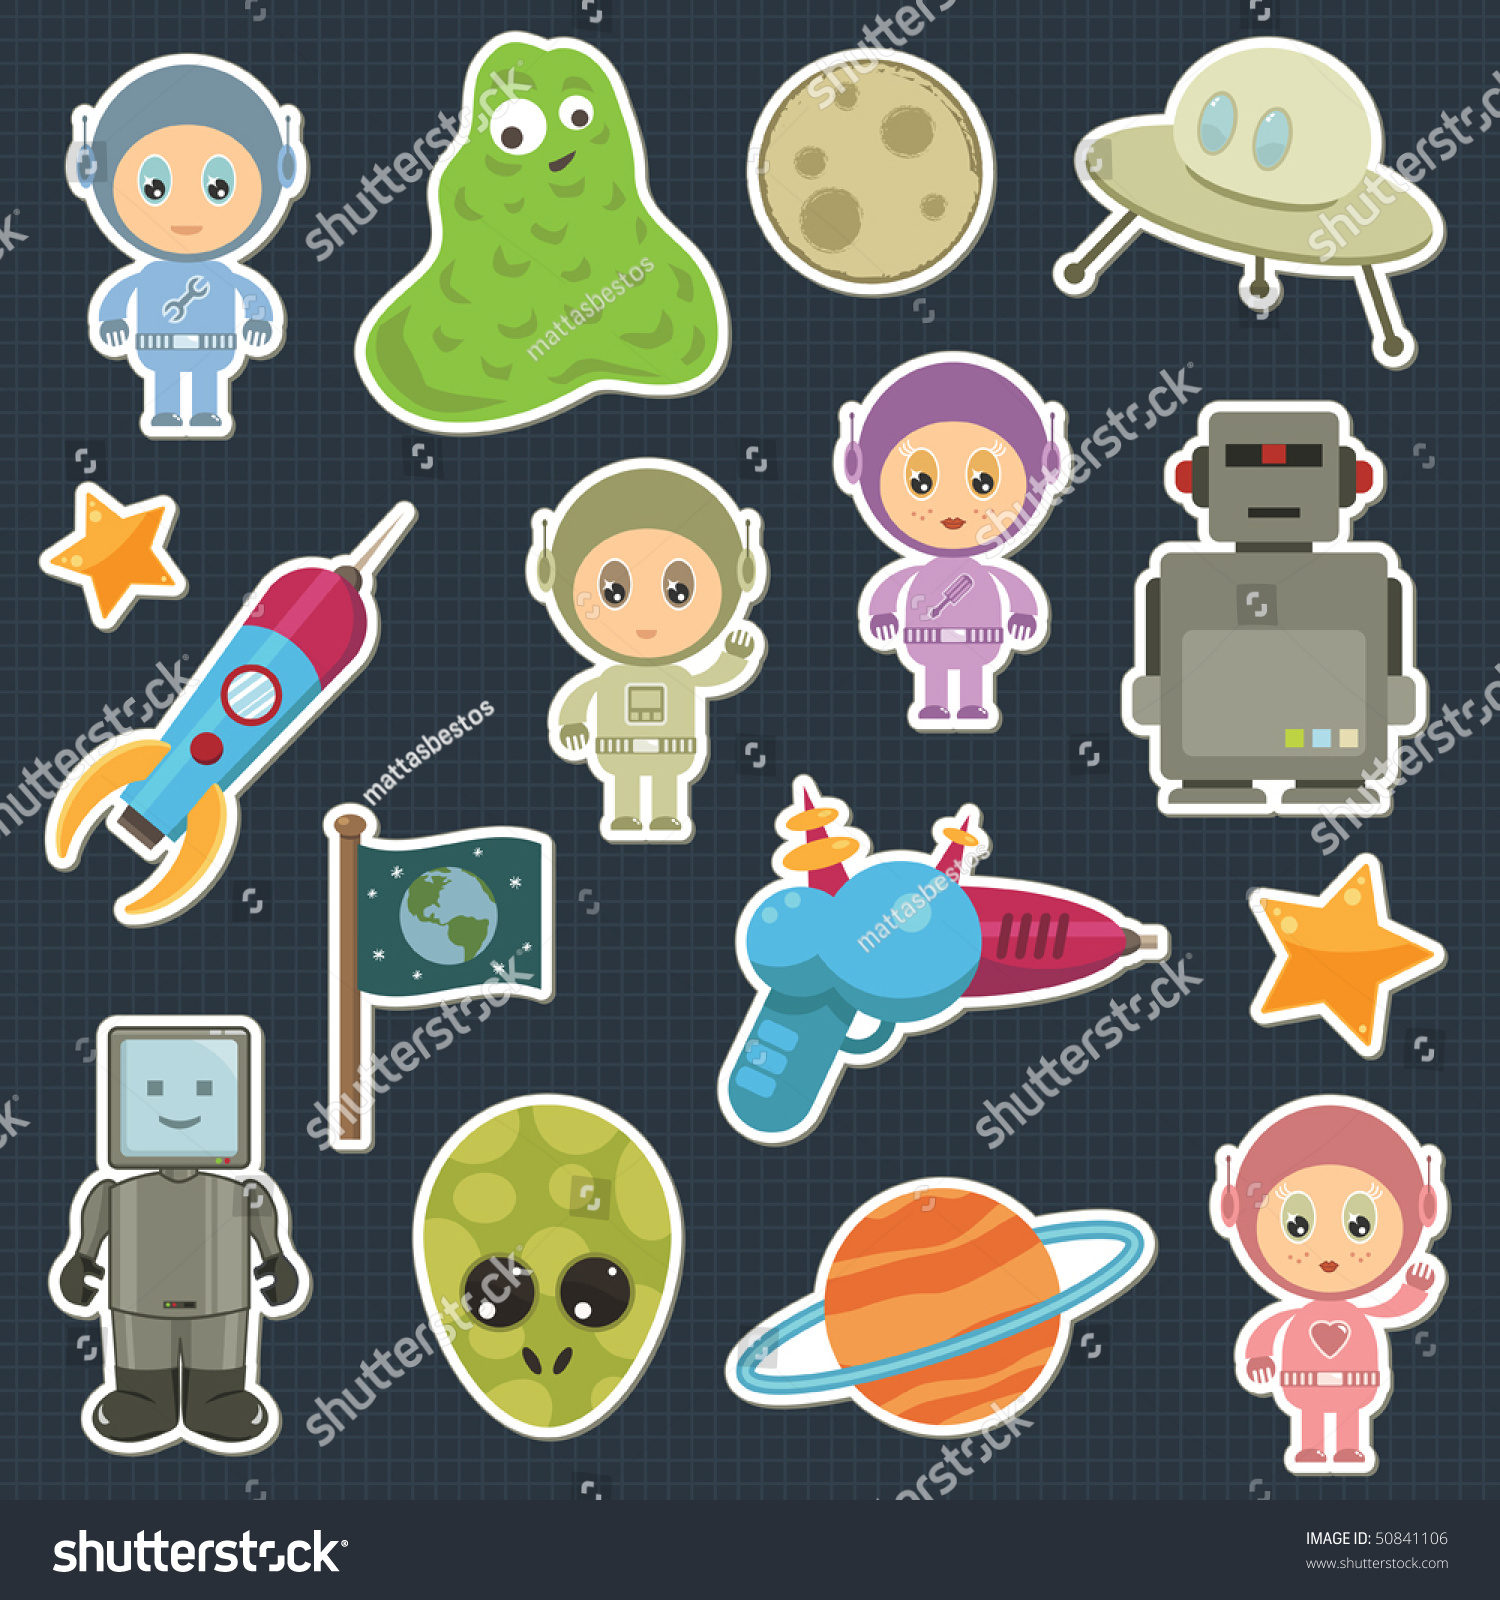 collection of space stickers with robots aliens and astronauts. Collection Space Stickers Robots Aliens Astronauts Stock Vector